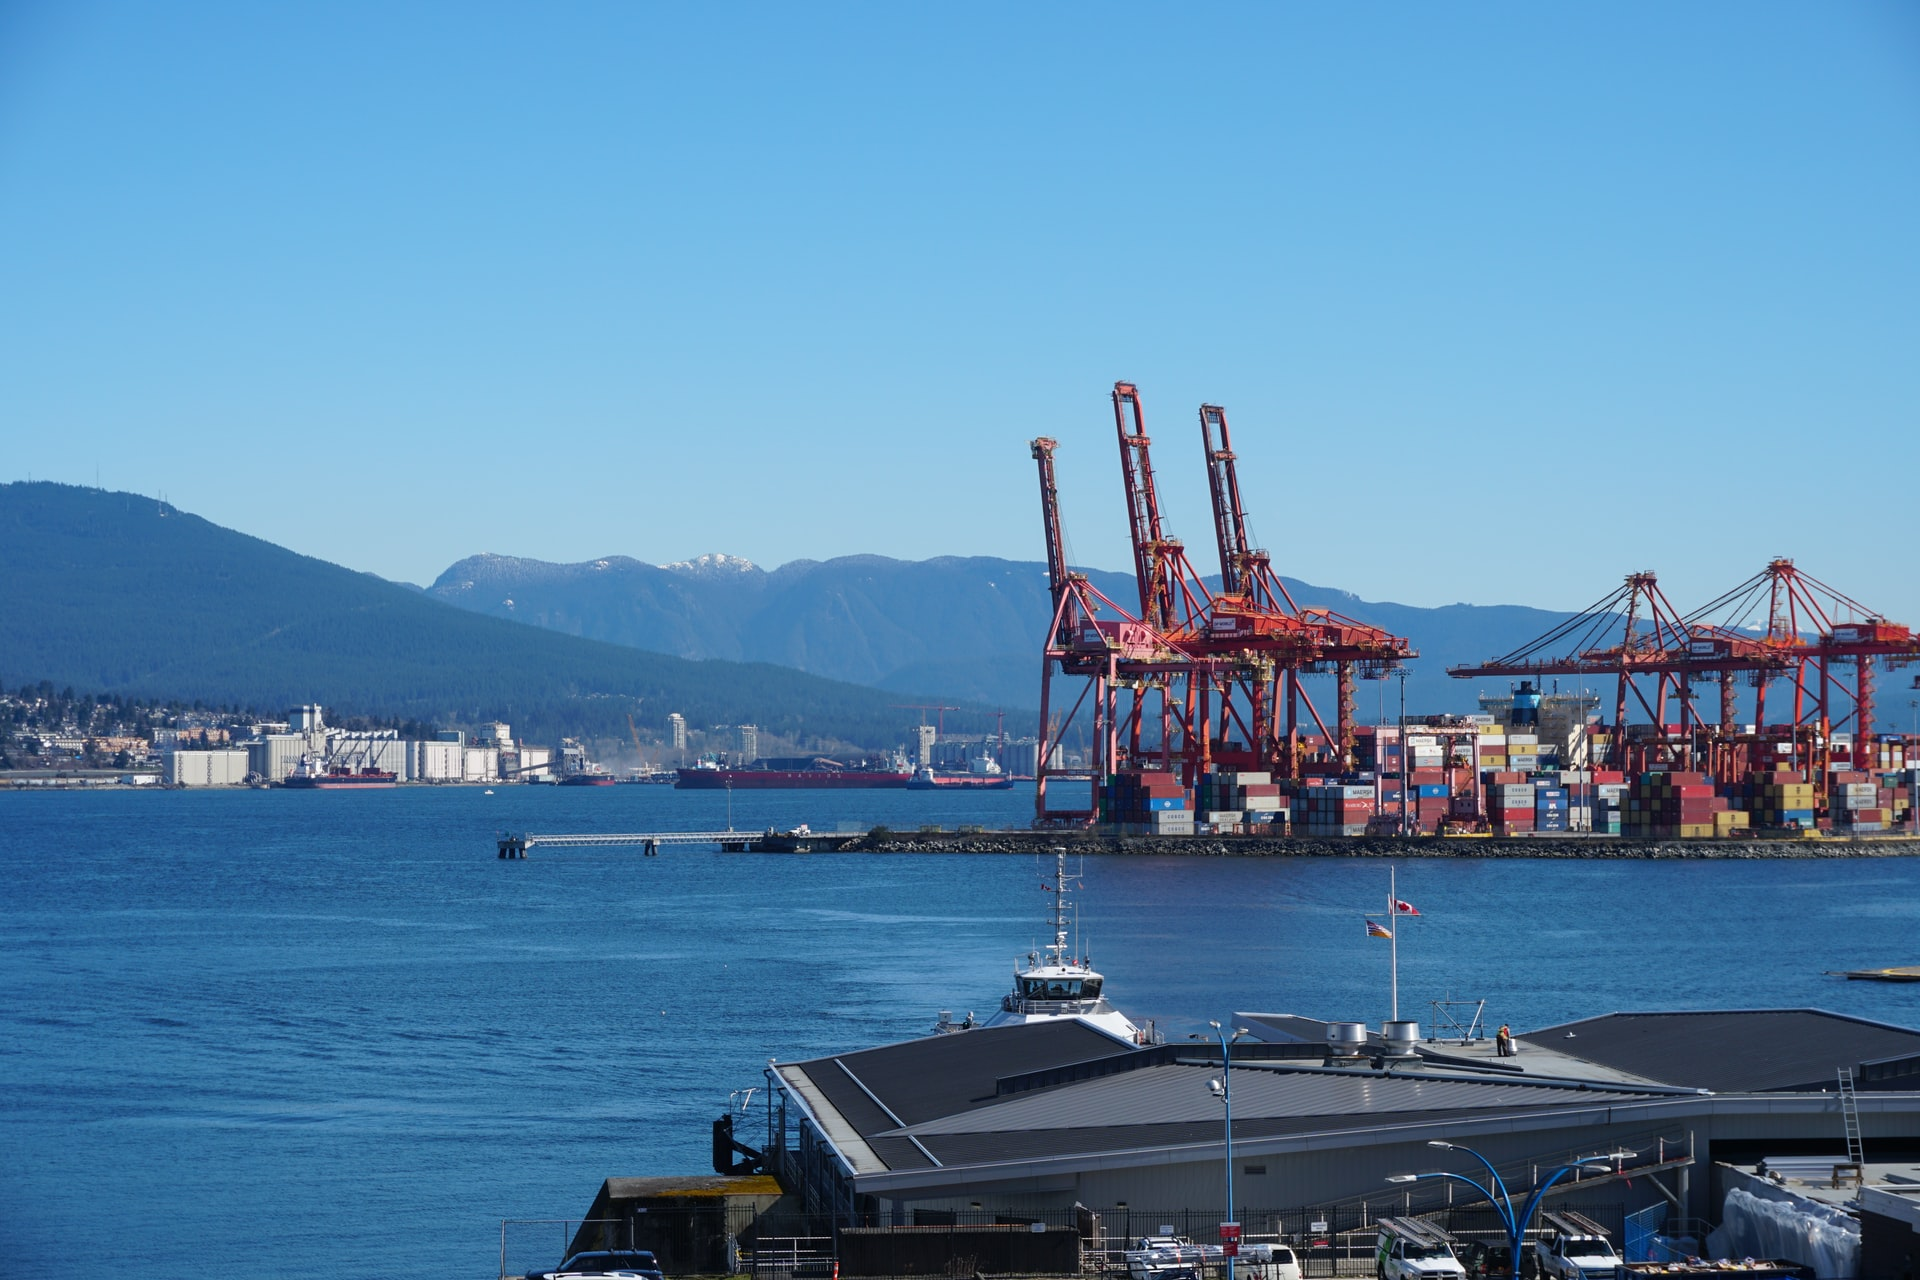 Downtown Vancouver port and shipping.